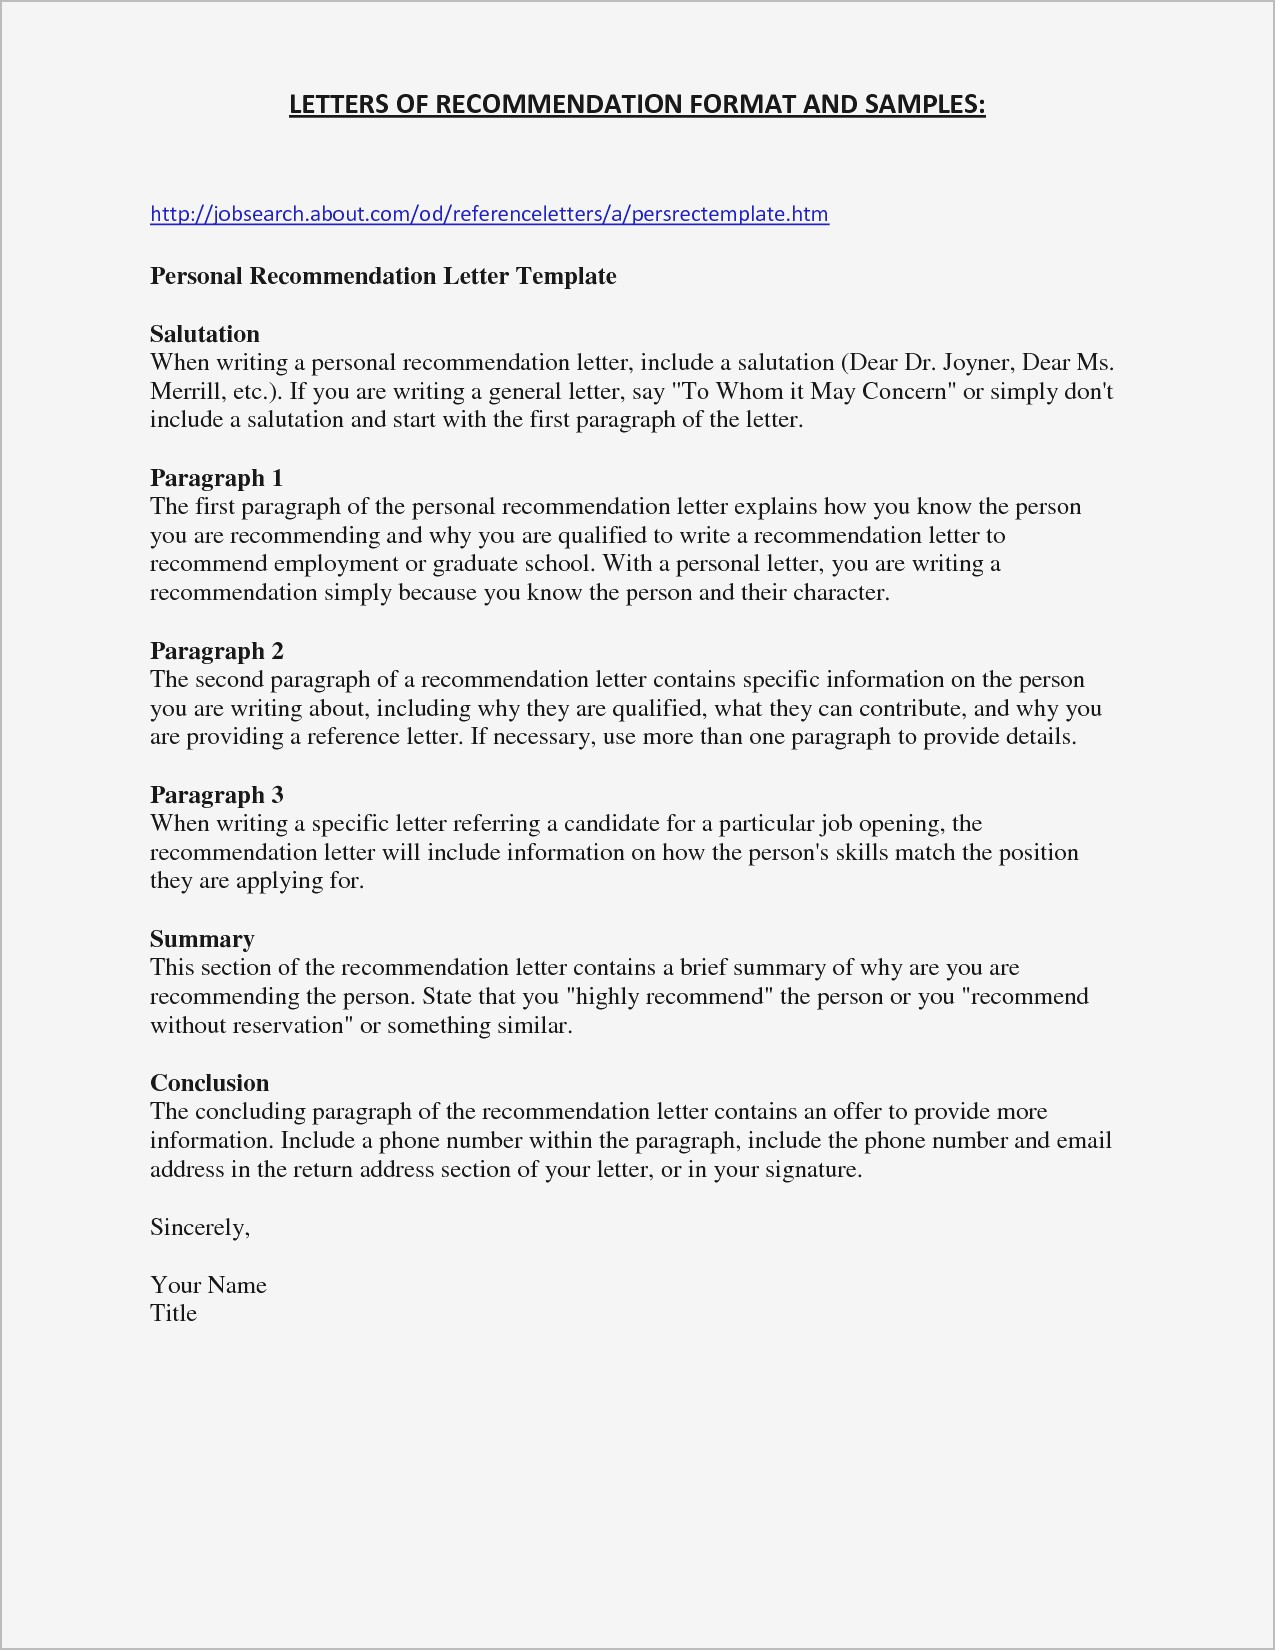 Letter Of Recommendation Template for Student - Letter Re Mendation Template for Student Samples